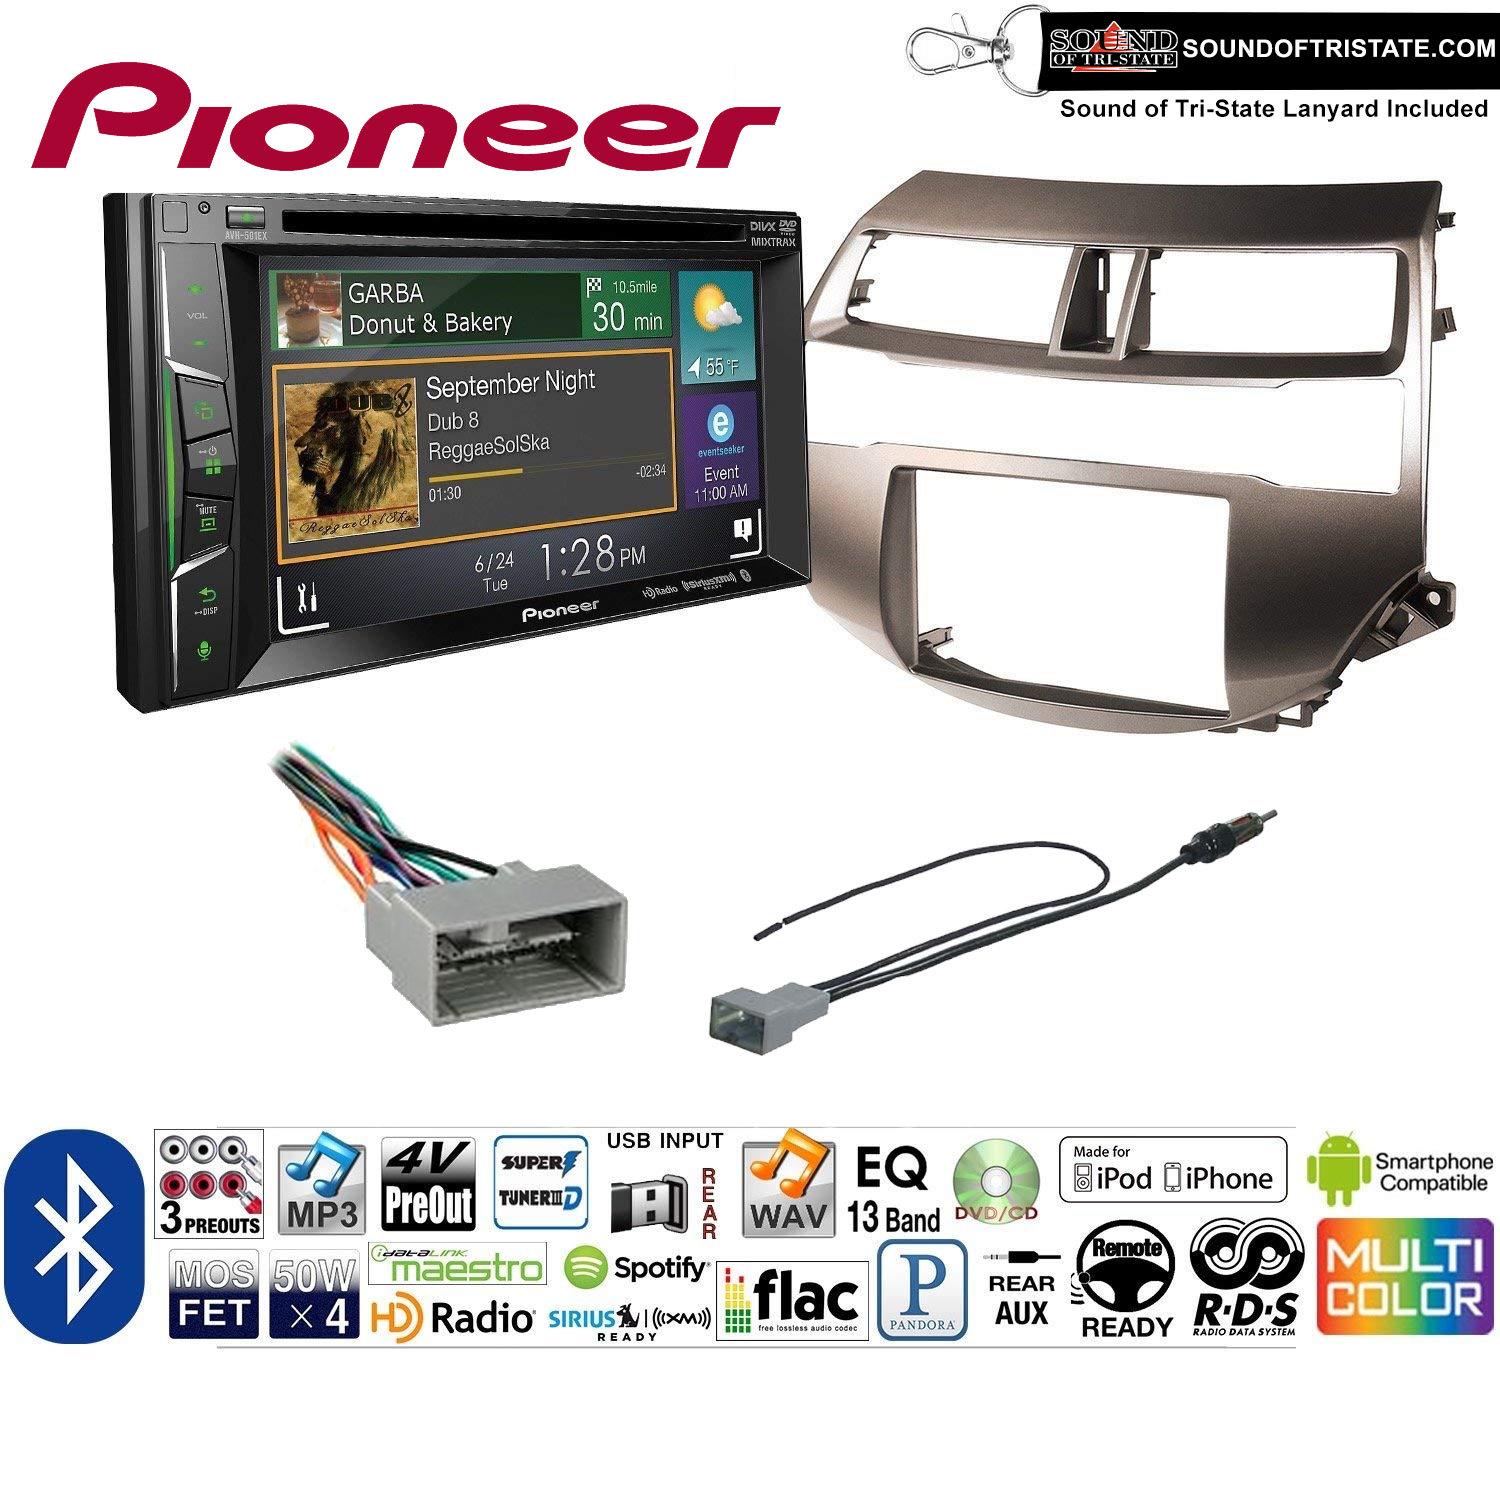 Pioneer AVH-501EX Double Din Radio Install Kit with DVD/CD Player Bluetooth Fits 2008-2012 Honda Accord (Gun Metallic Taupe) + Sound of Tri-State Lanyard